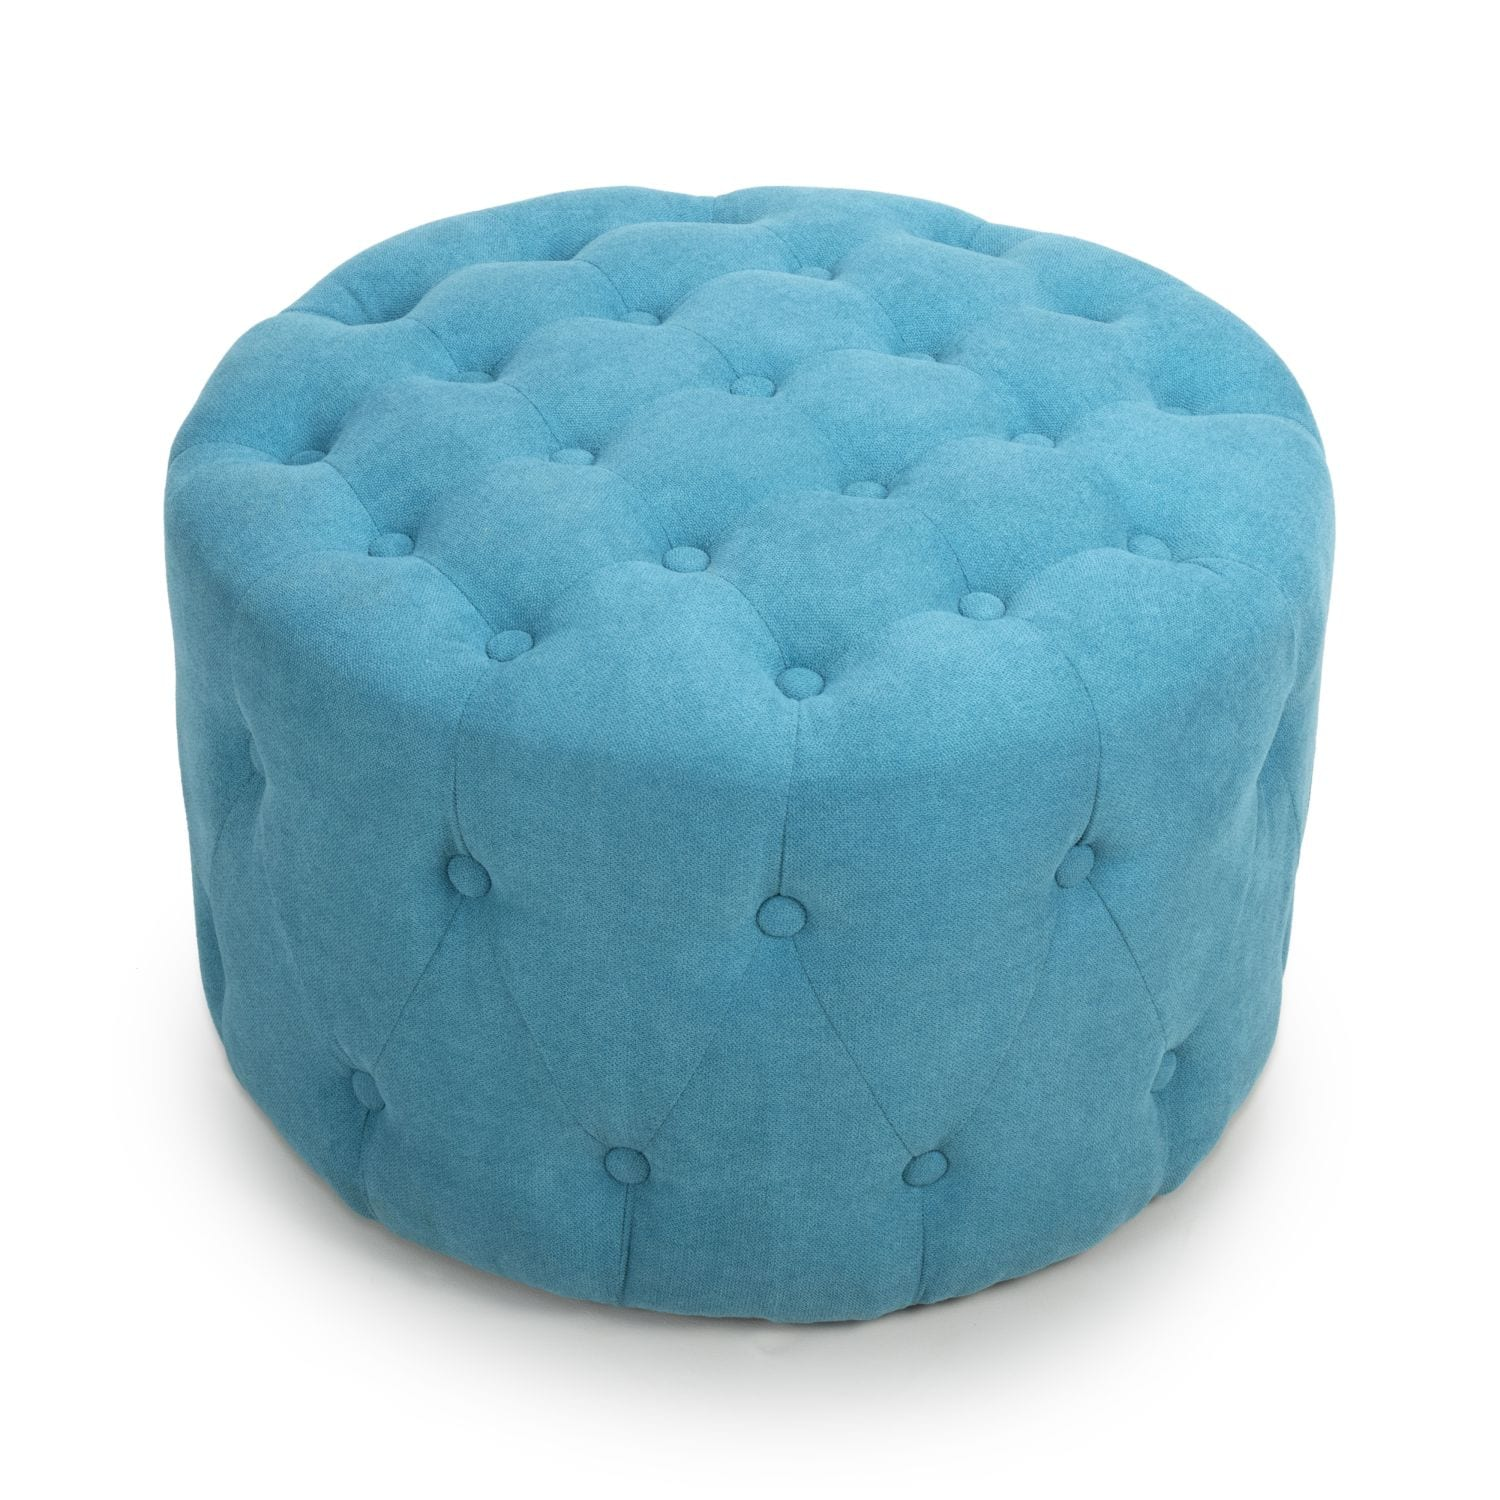 Wreschner Small Round Turquoise Pouffe